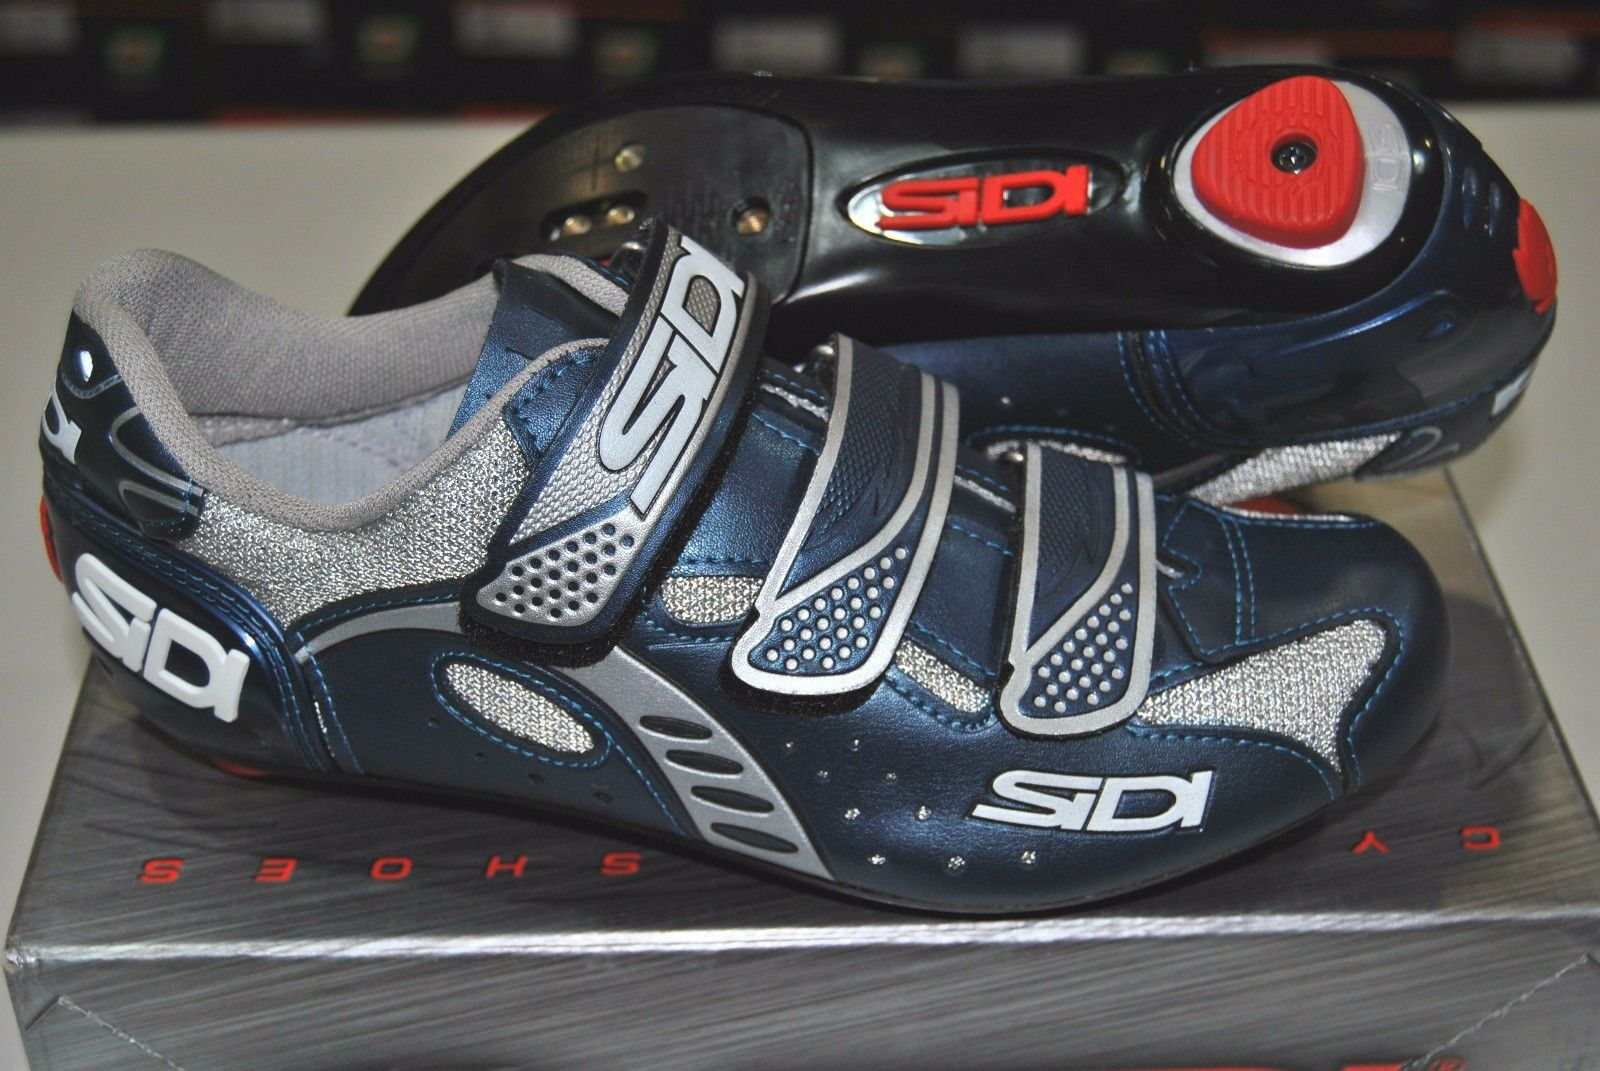 SHOES ROAD SIDI ZETA MIDNIGHT blueE SHOES road sidi Zeta MIDNIGHT blueE